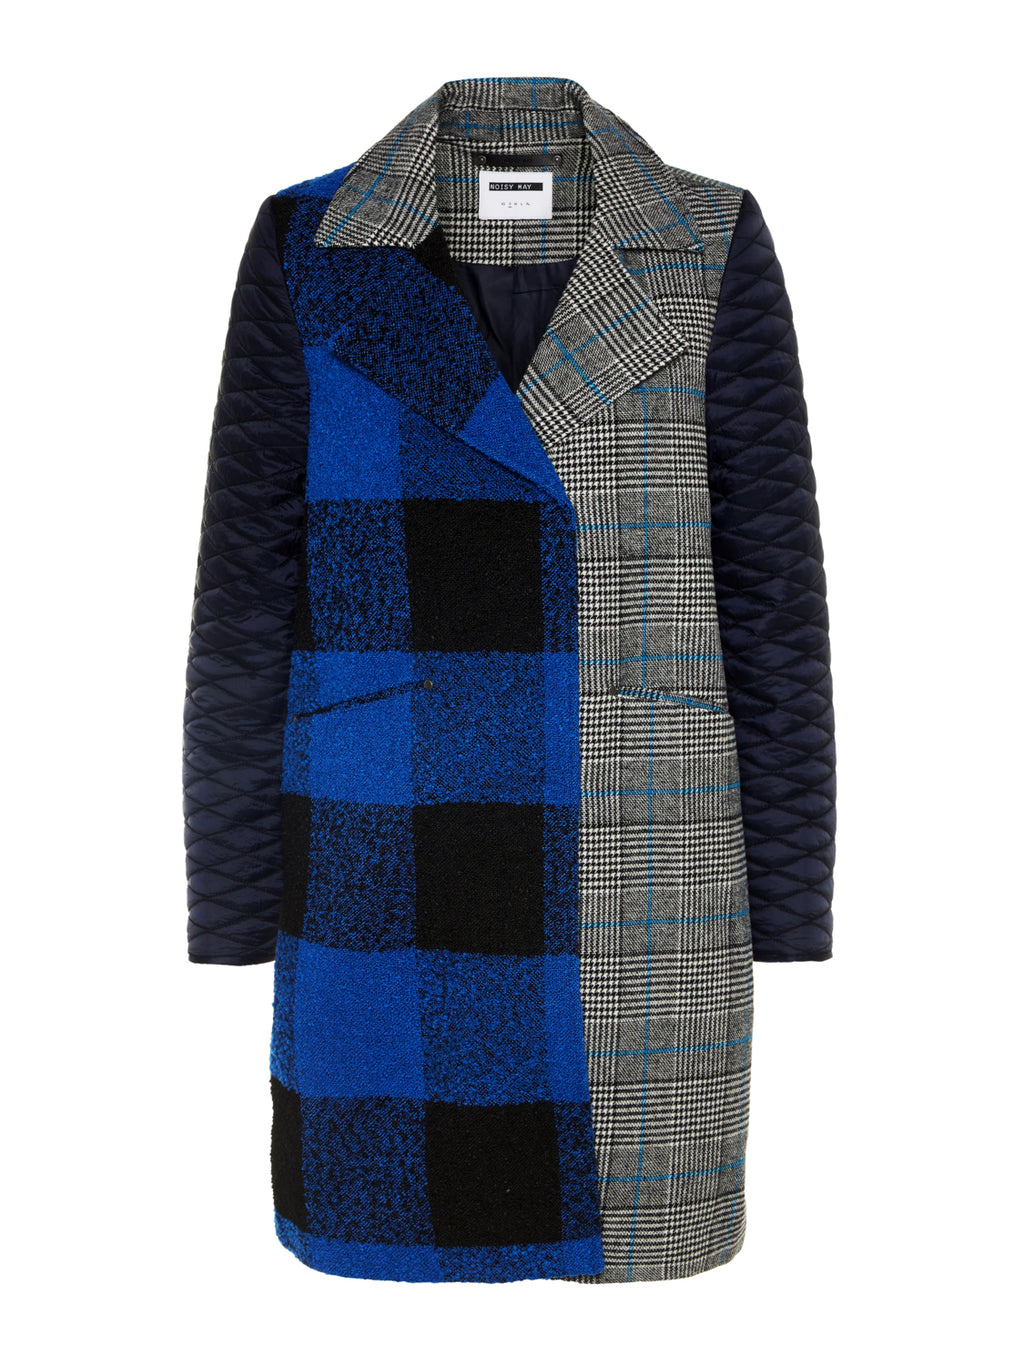 Chequered Panelled Coat - Cultur'd Collective